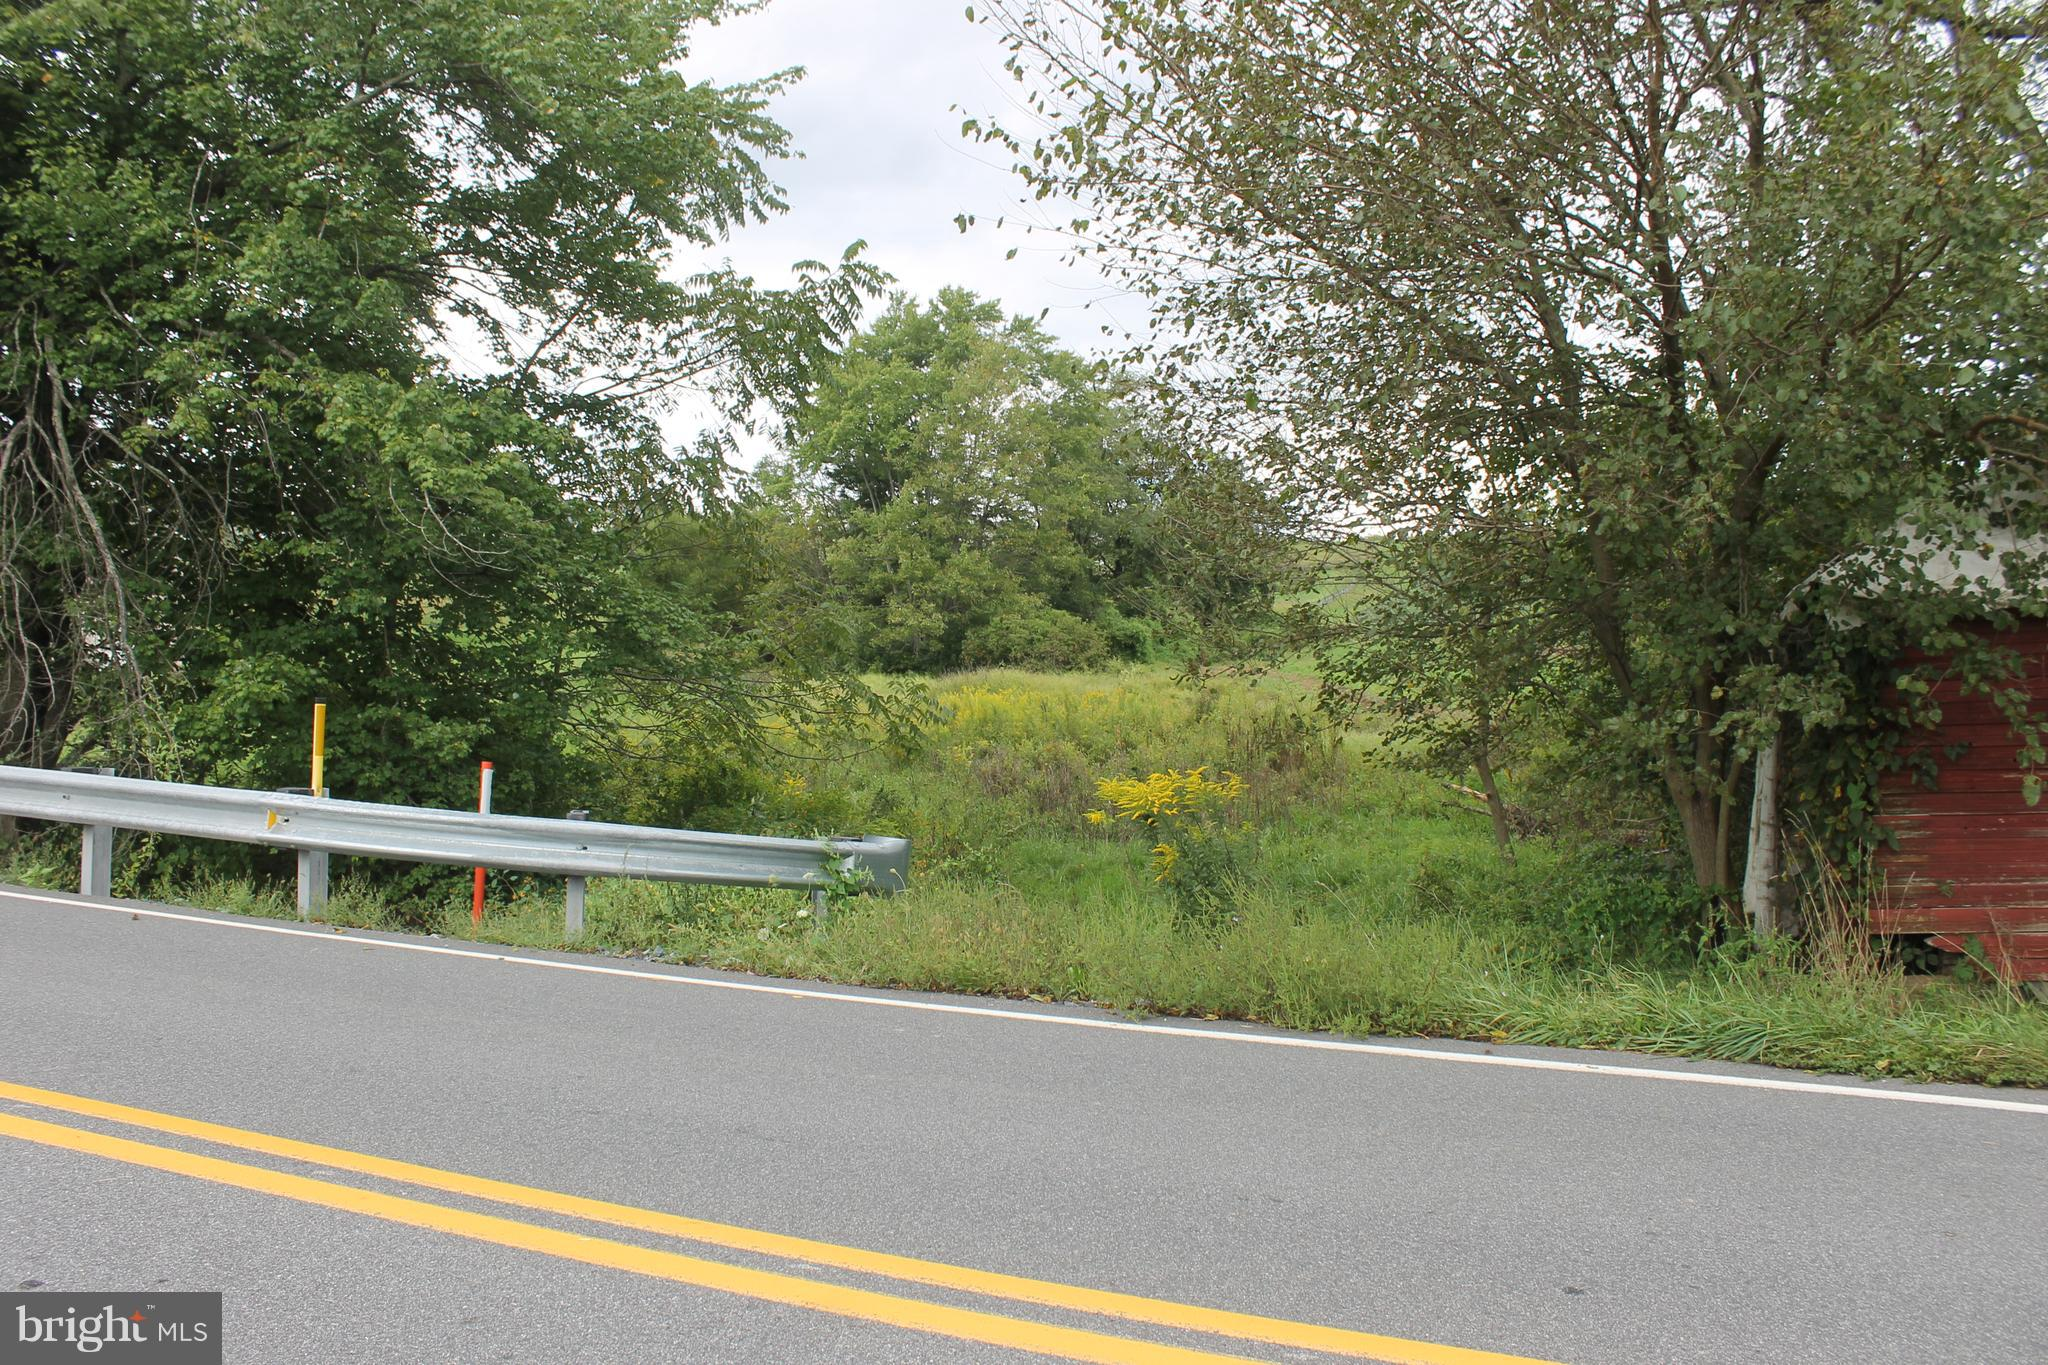 Lot #23 BLOOMING GROVE, GLENVILLE, PA 17329